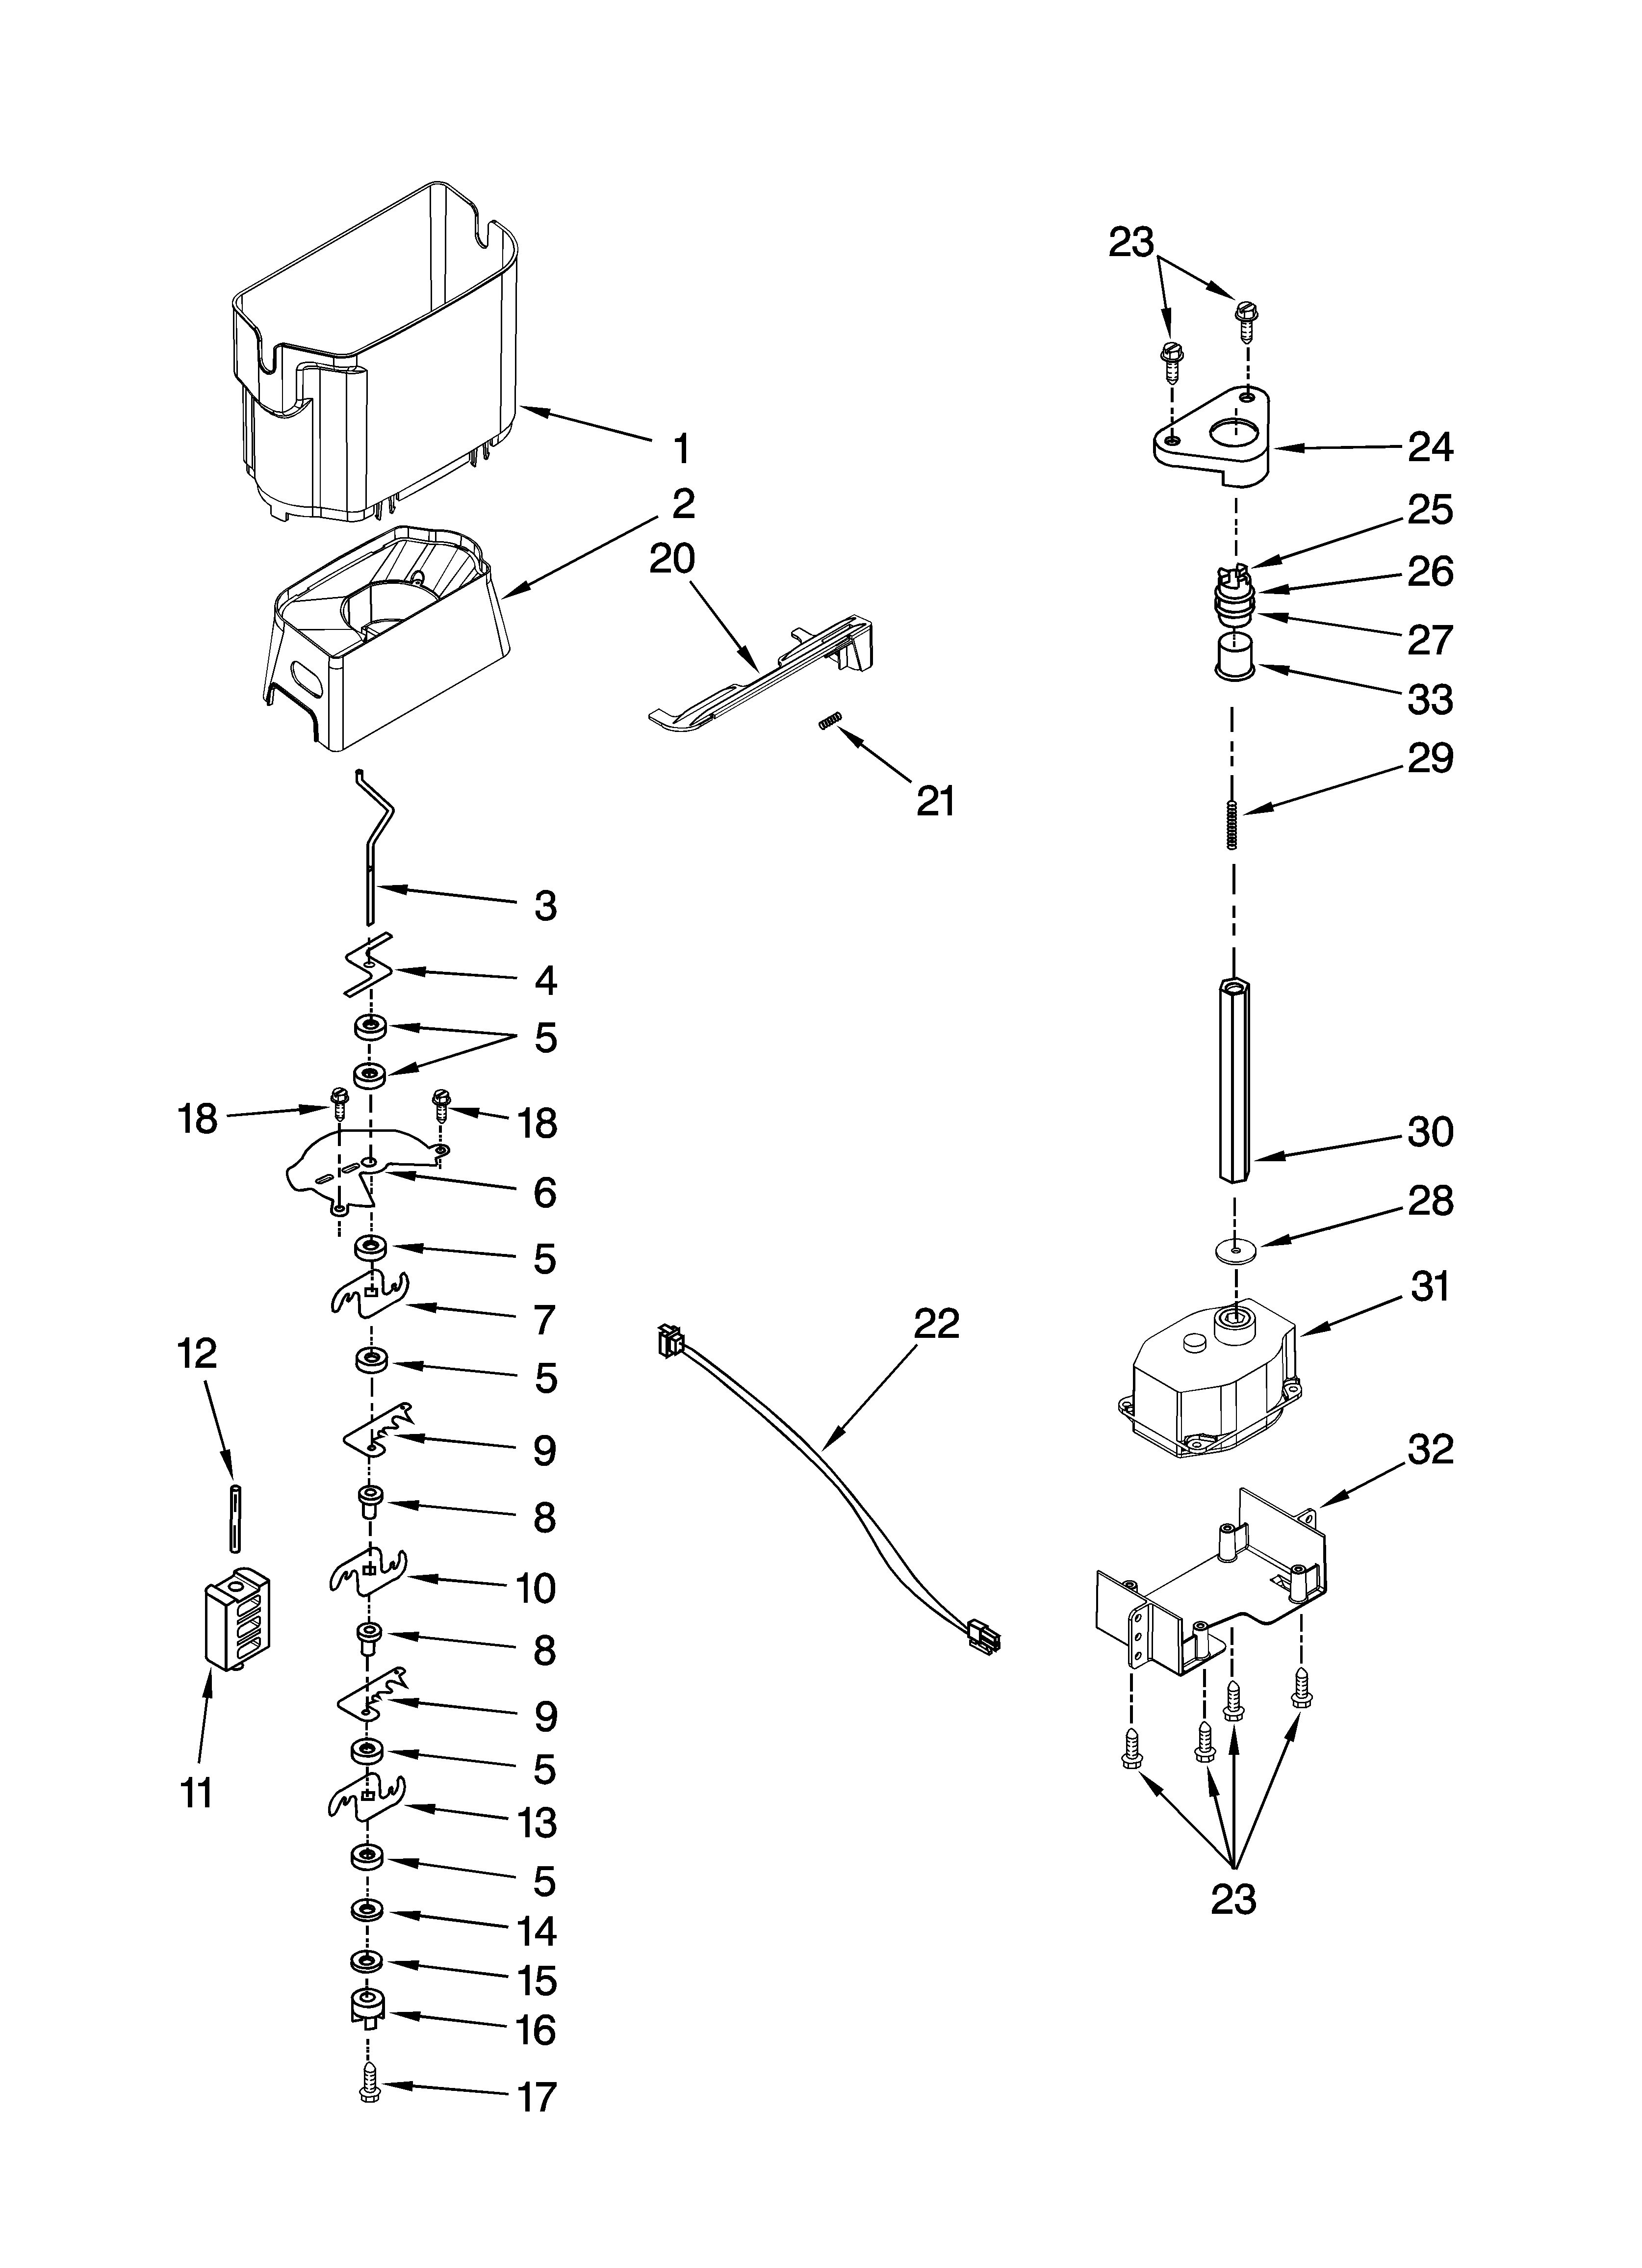 KitchenAid KSCS23FTWH02 motor and ice container parts diagram